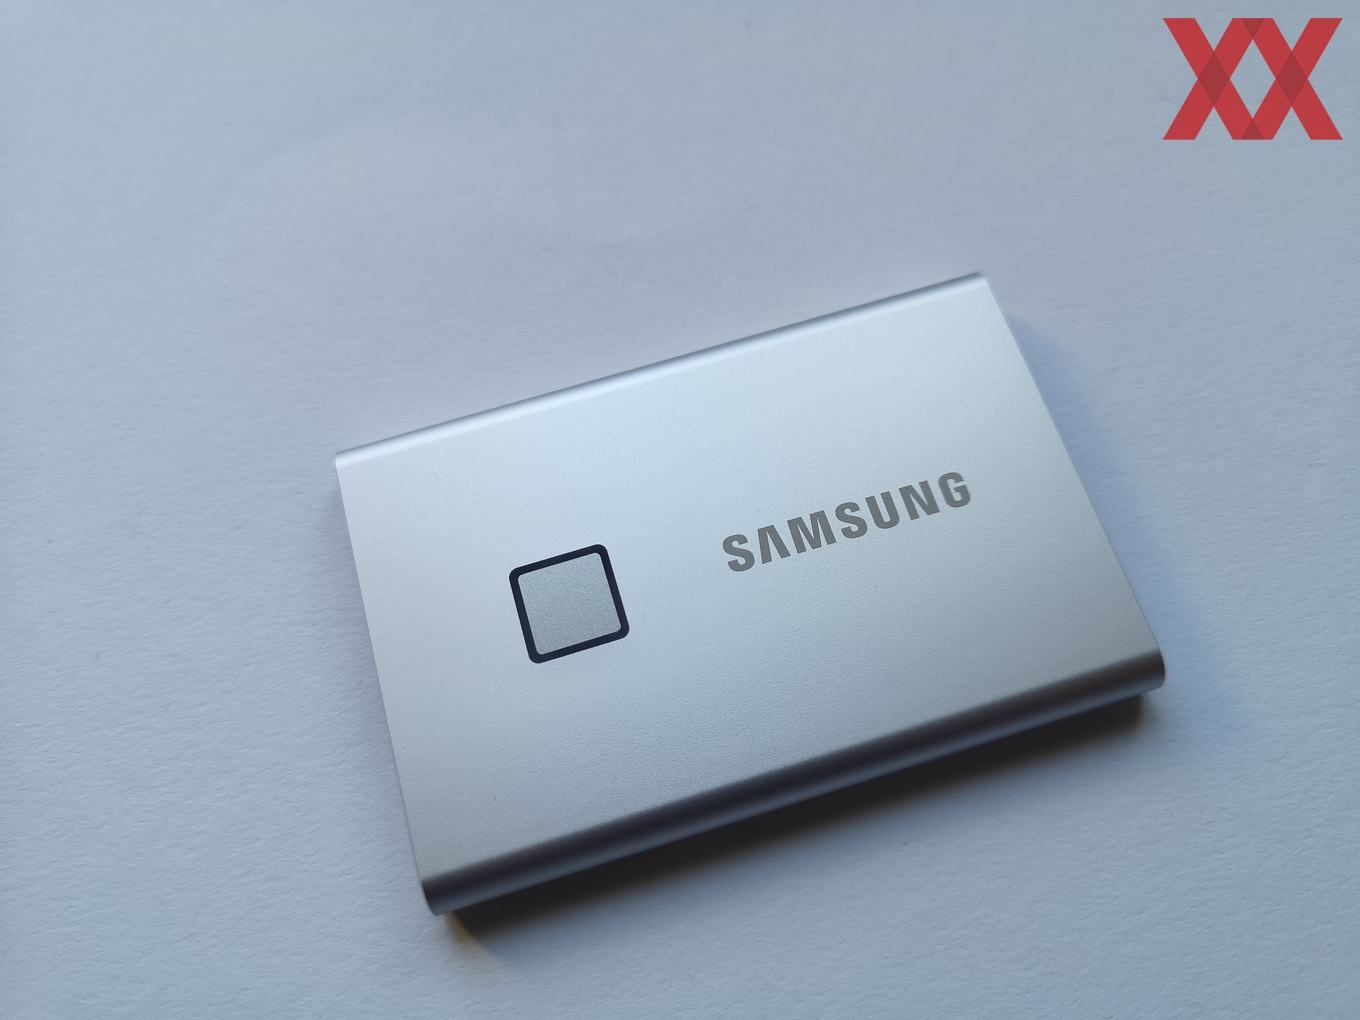 Samsung PortableSSD T7 Touch 1 TB